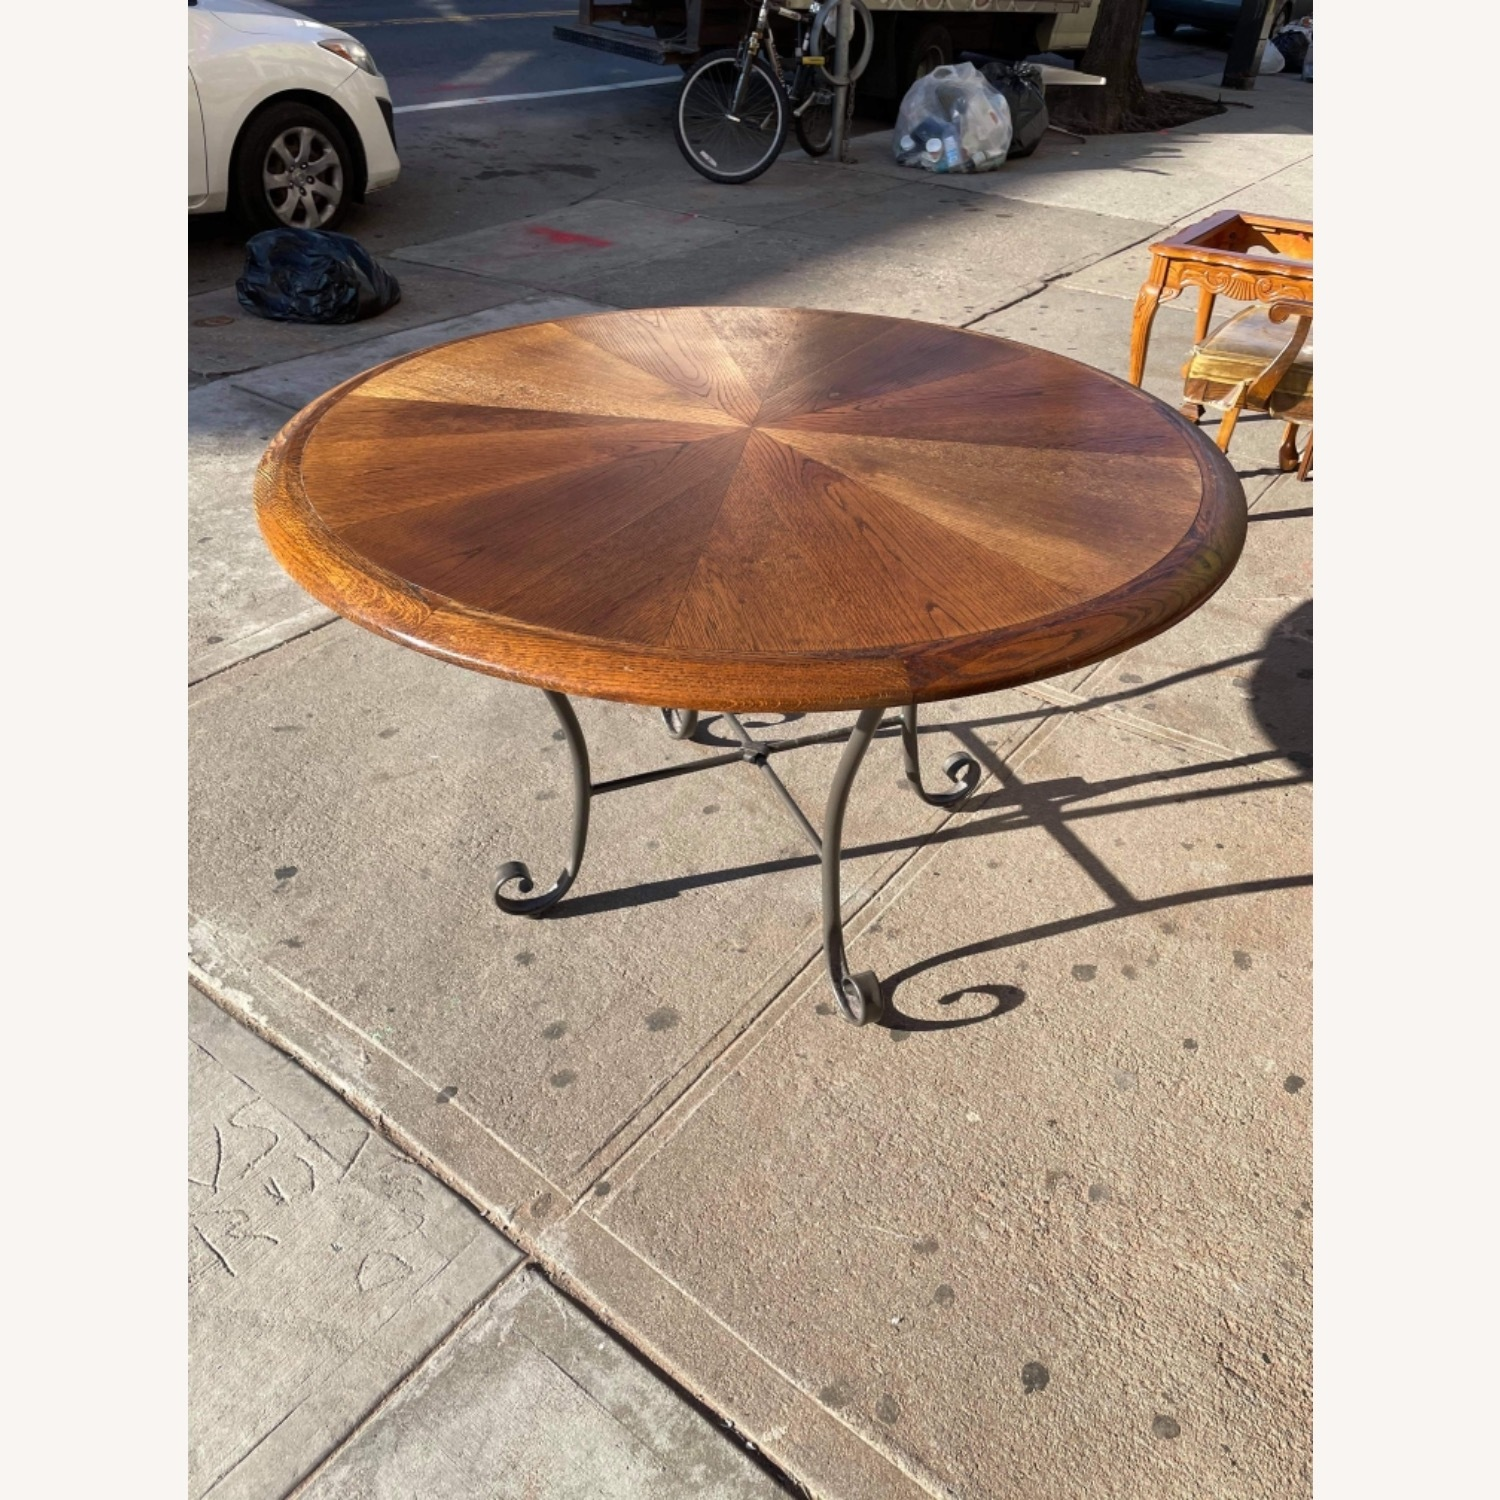 Vintage 1970s Wood & Metal Round Table - image-5